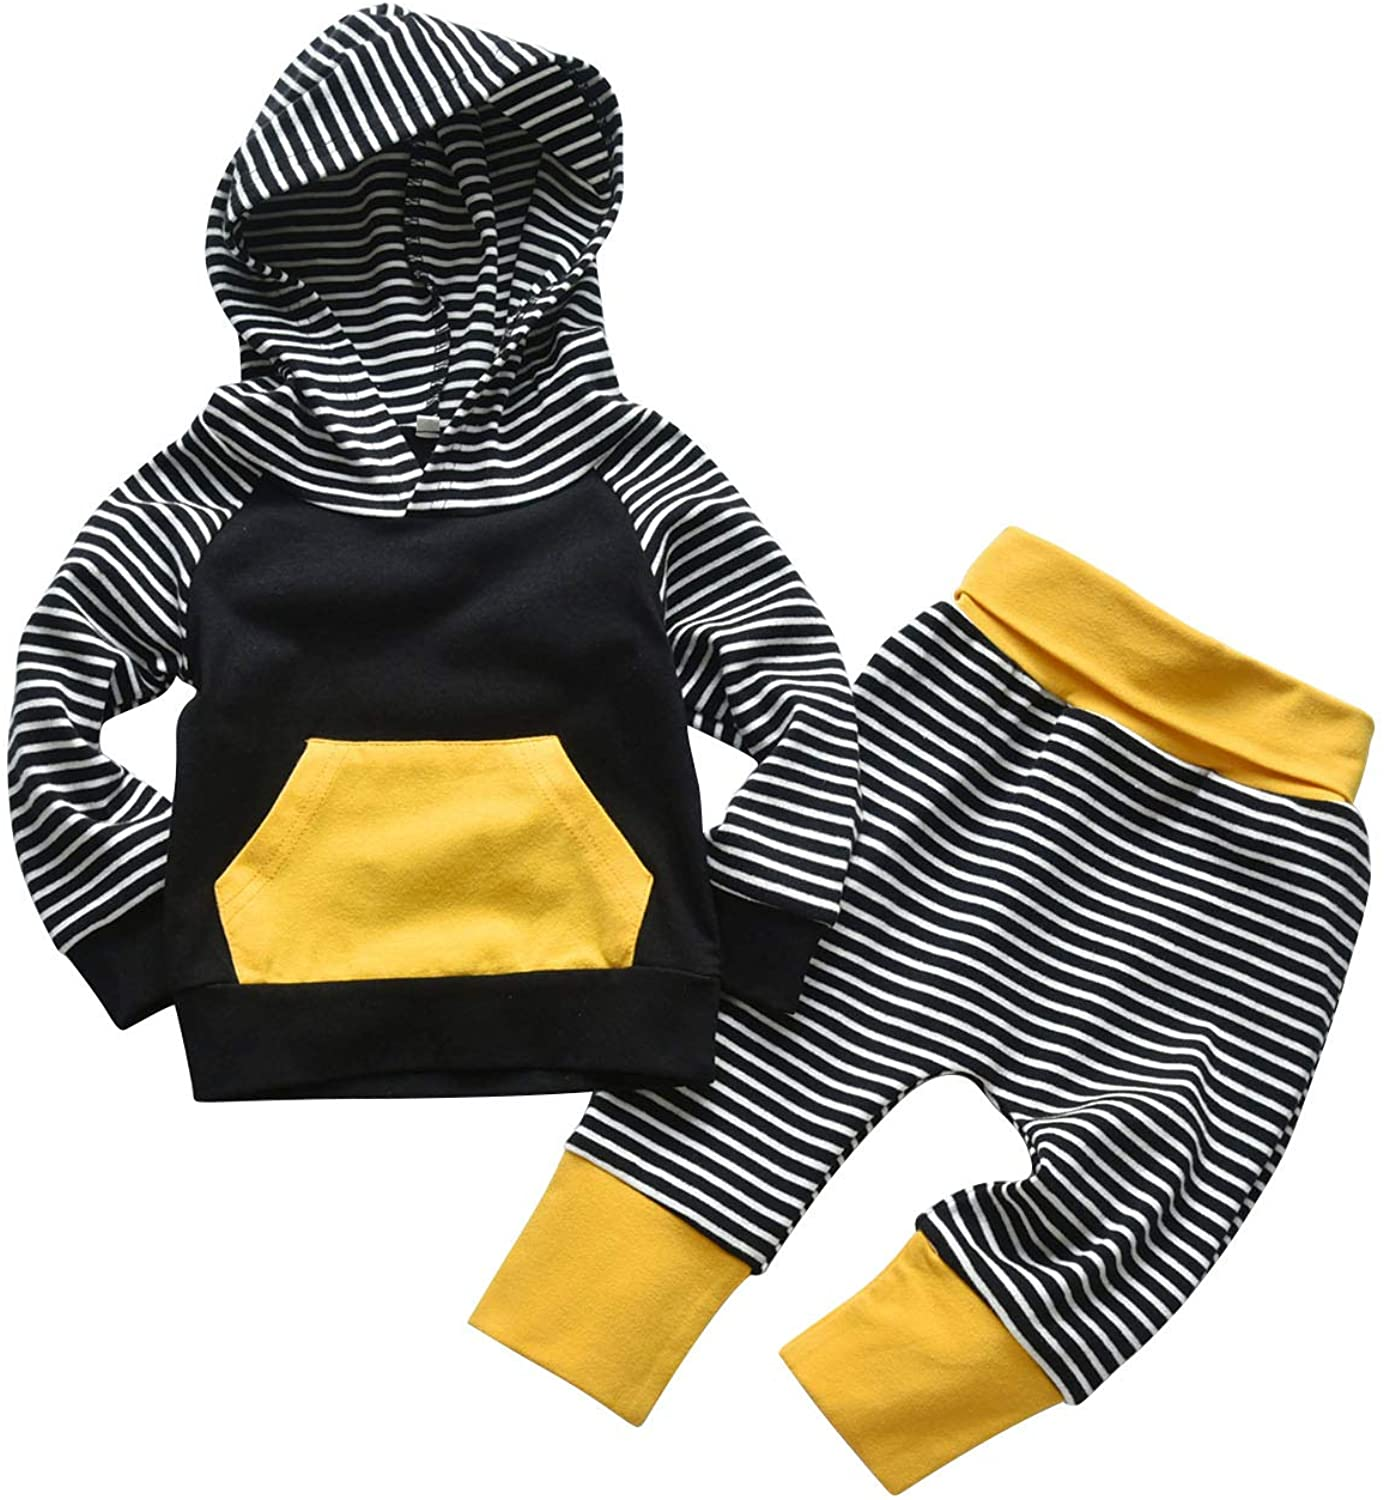 Toddler Infant Baby Boy Clothes Striped Long Sleeve Hoodie Tops Sweatsuit Pants Outfit Set